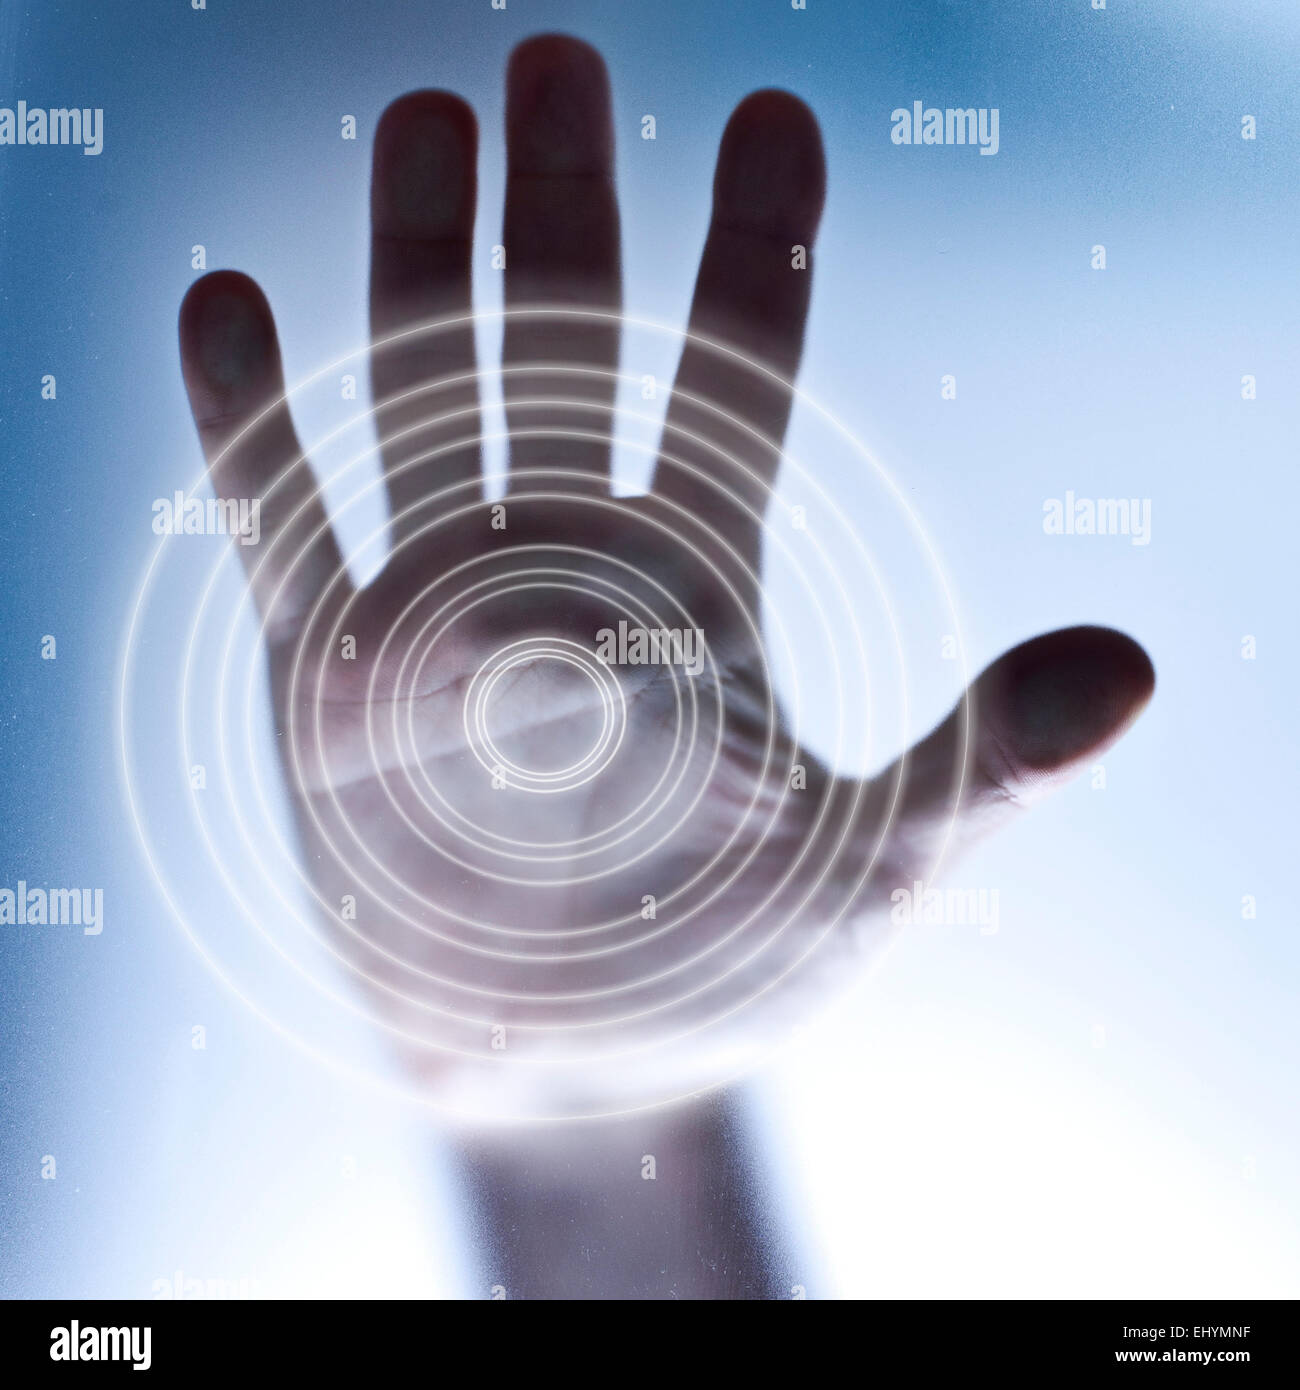 Concept for touch screen and future technology - Stock Image